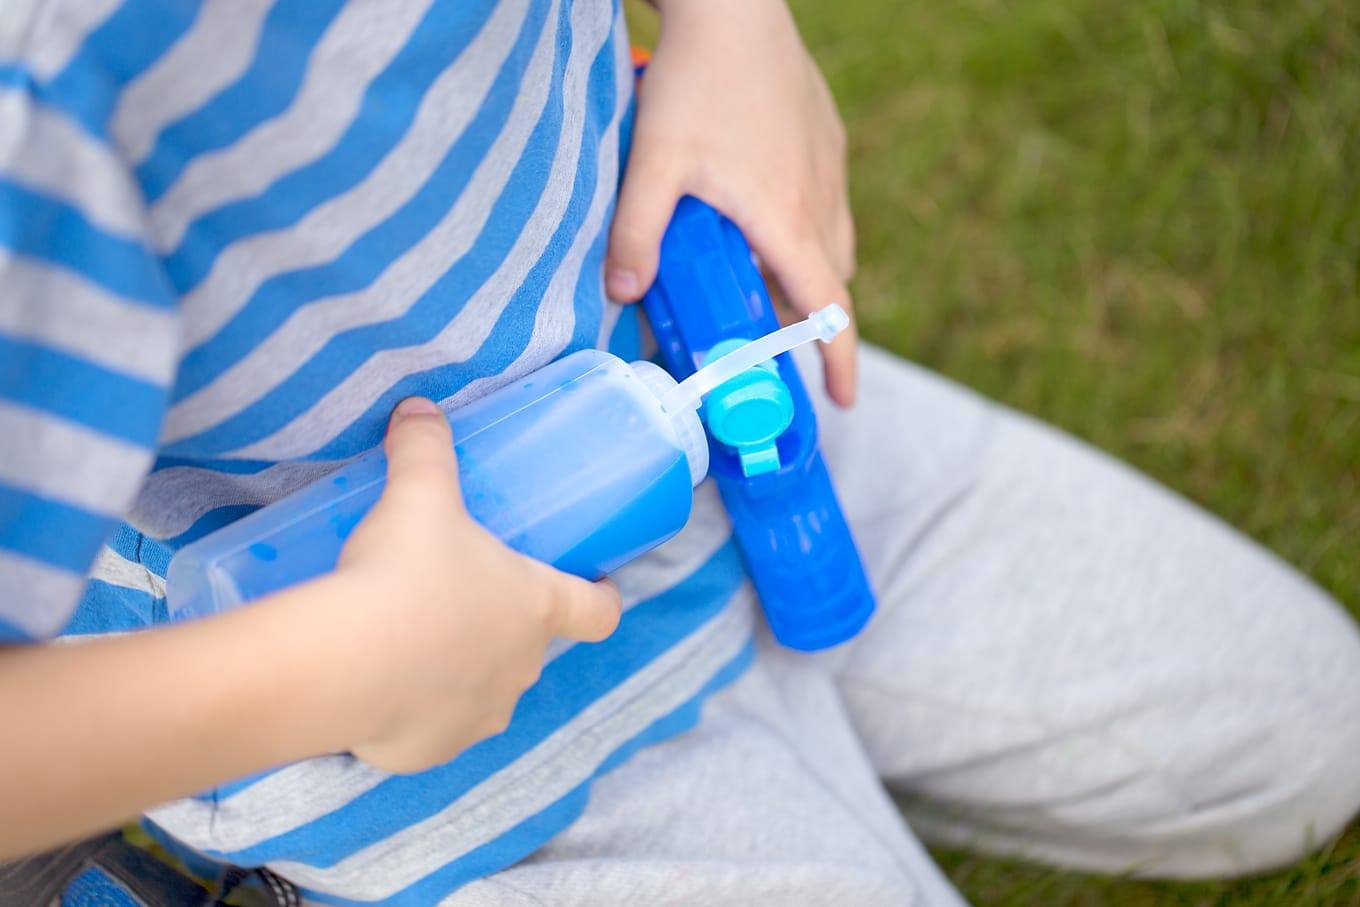 Child Filling Squirt Gun for Squirt Painting